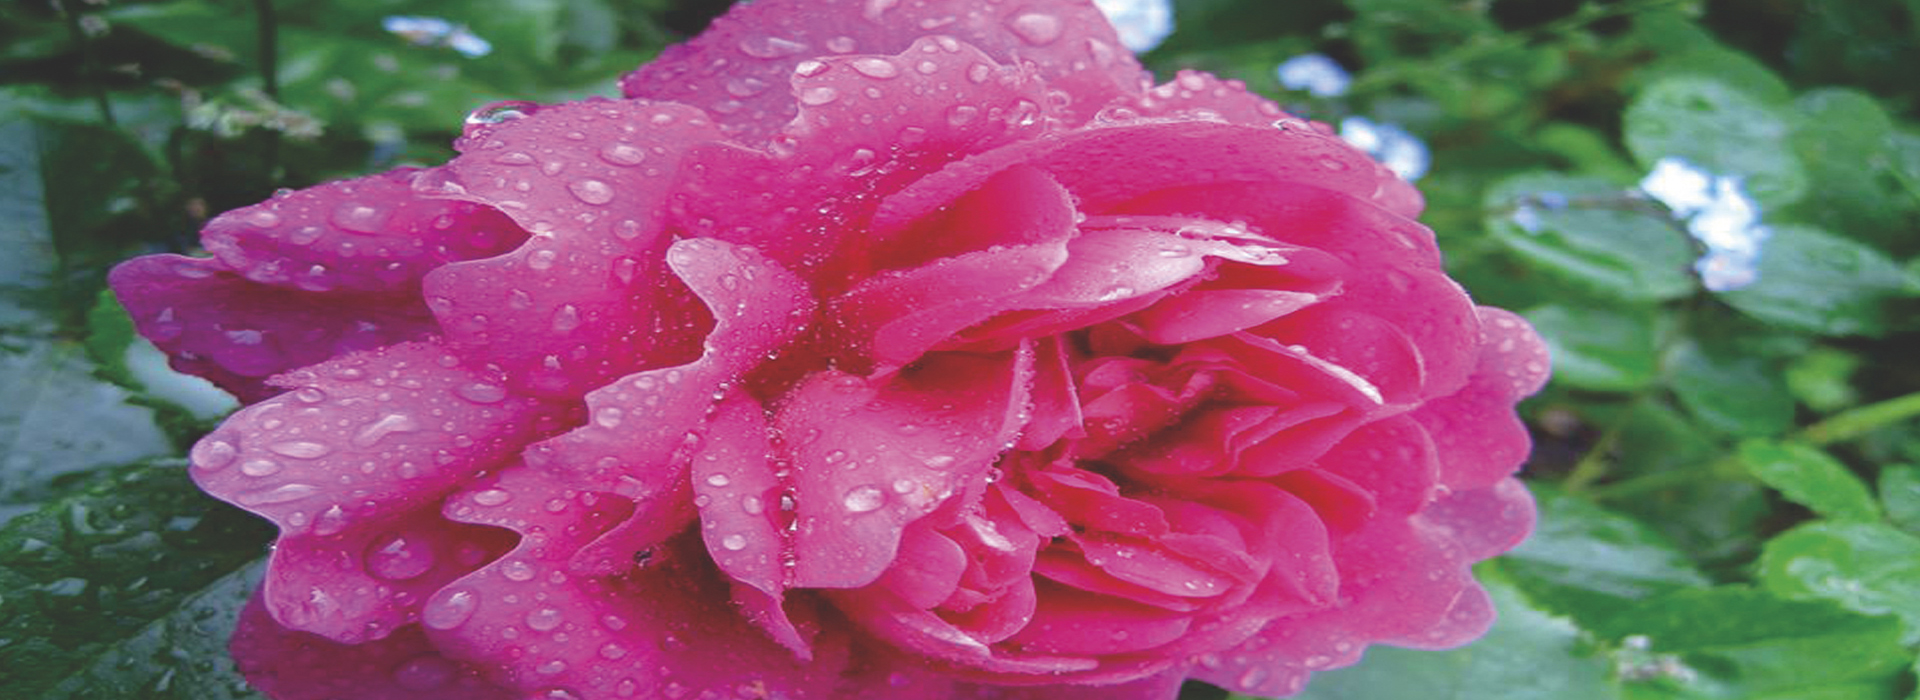 rose_RGB_72dpi_web-1